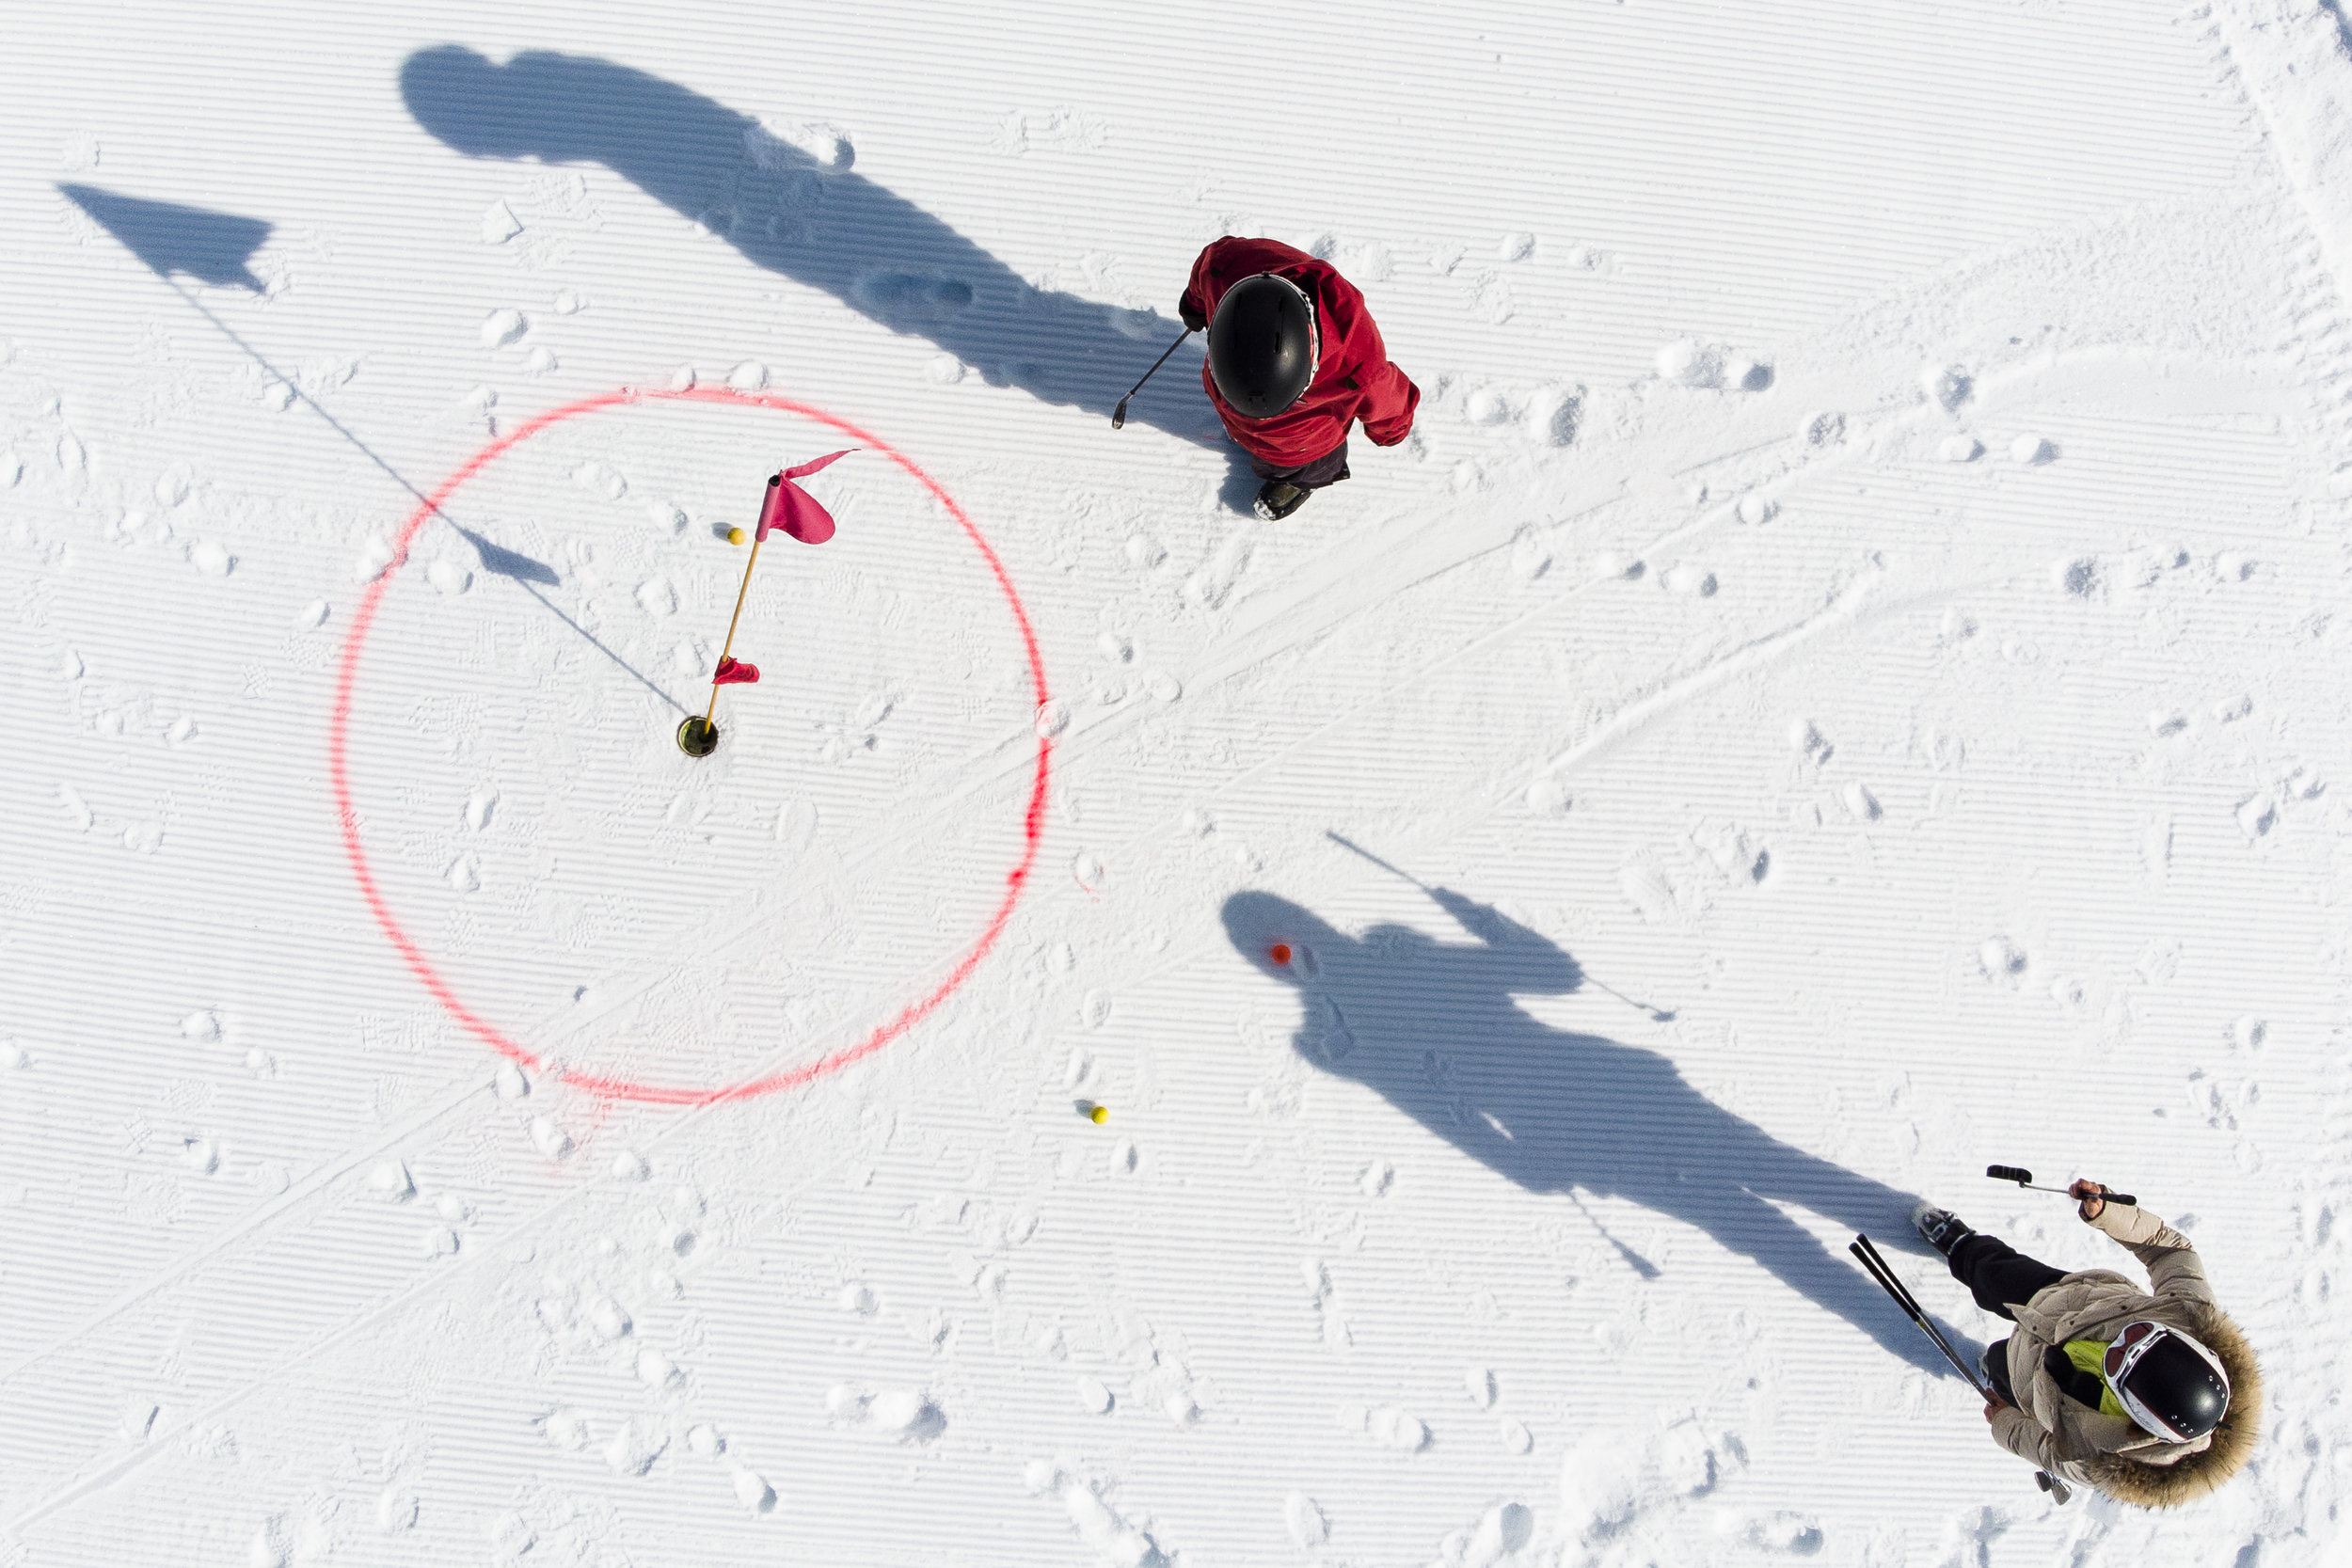 Skiers take part in a winter golf initiation on the slopes of the alpine resort of Villars-sur-Ollon, Switzerland, Friday, February 23, 2018. (KEYSTONE/Valentin Flauraud)